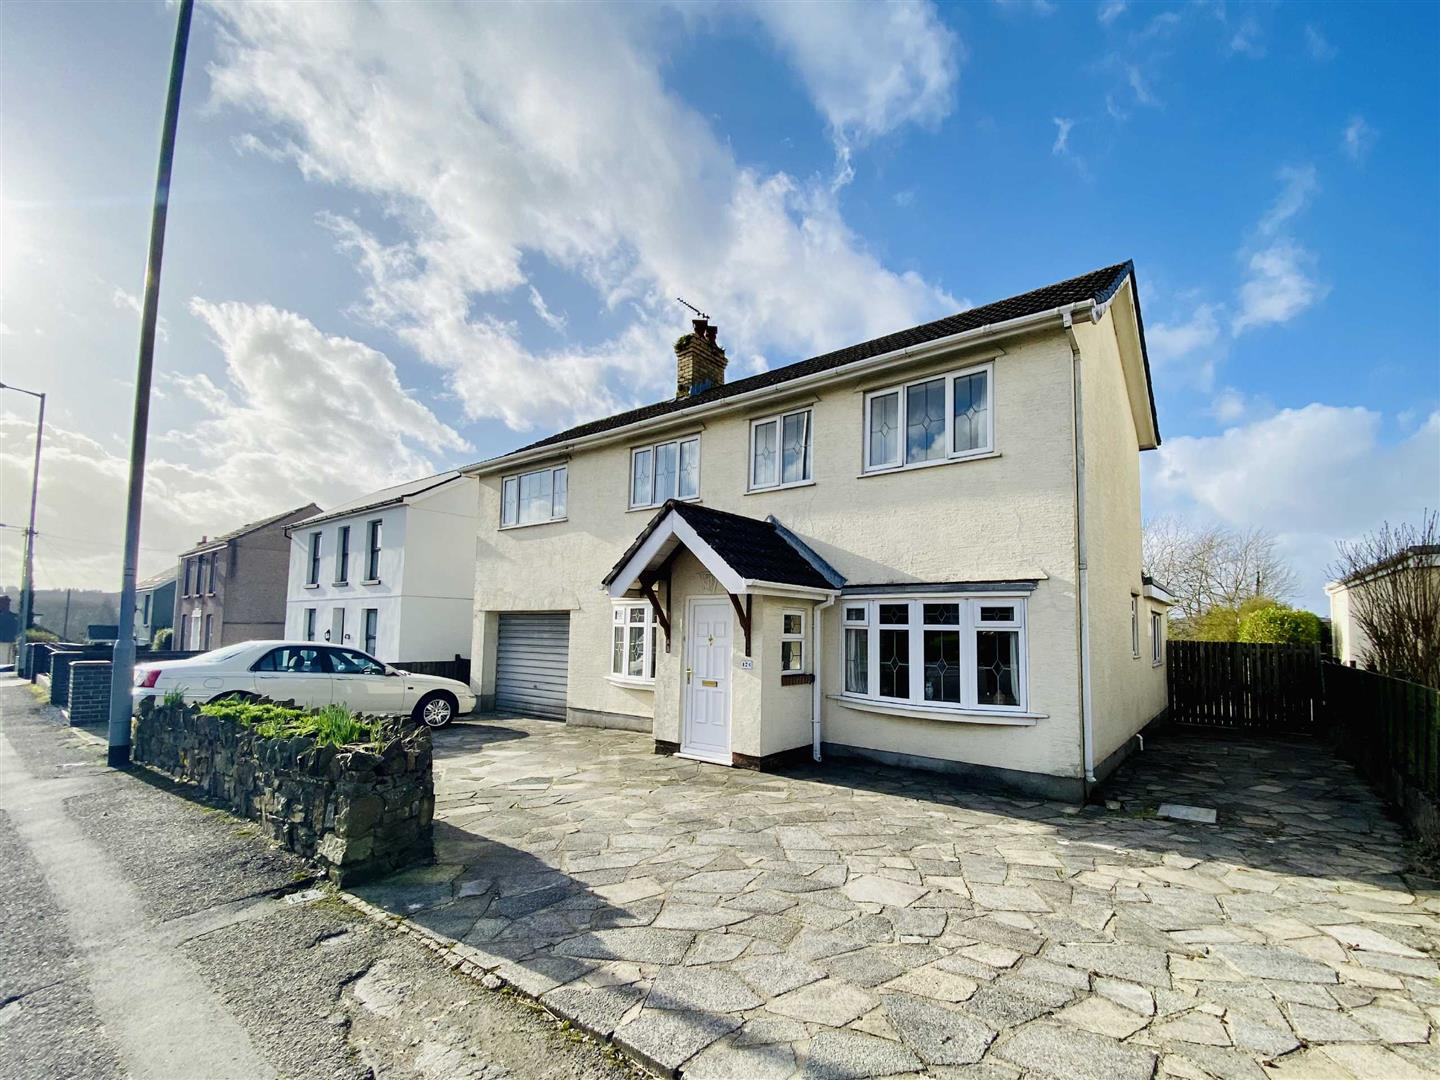 Gower Road, Killay, Swansea, SA2 7DZ